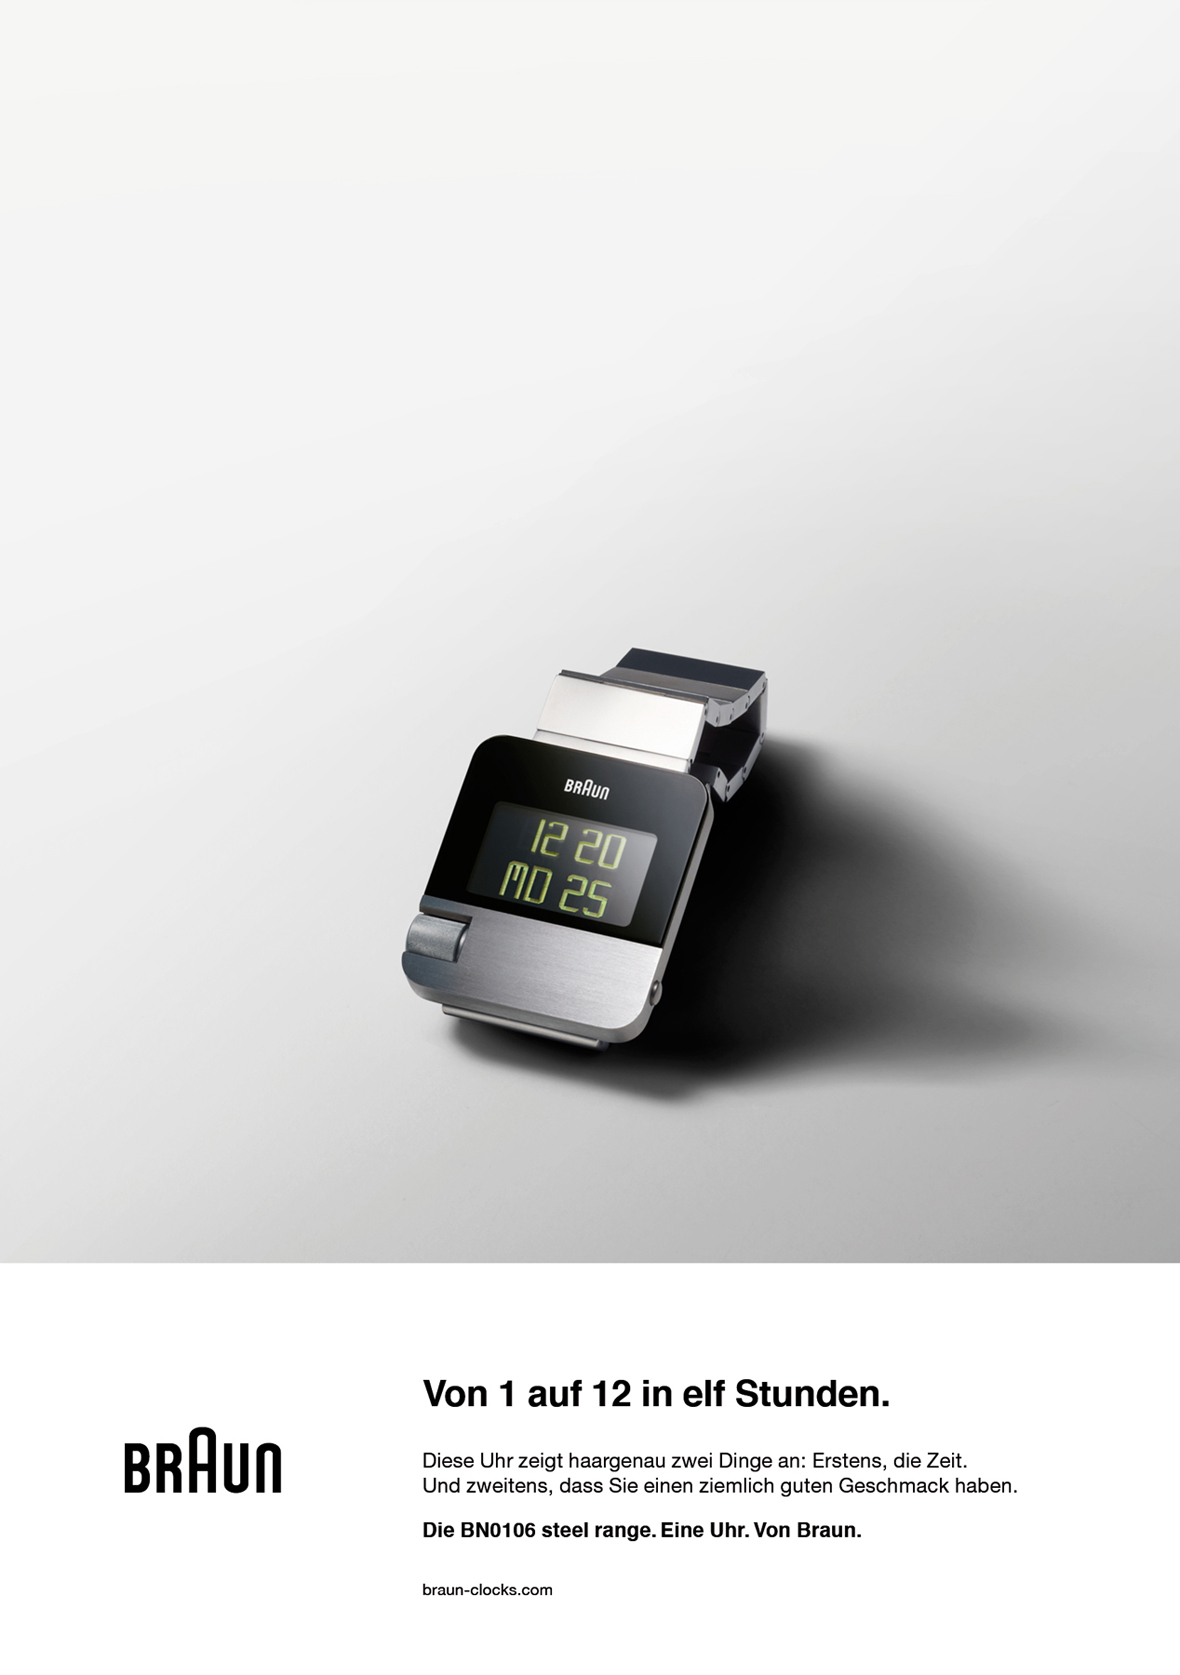 Braun_Watches_German1_1180px